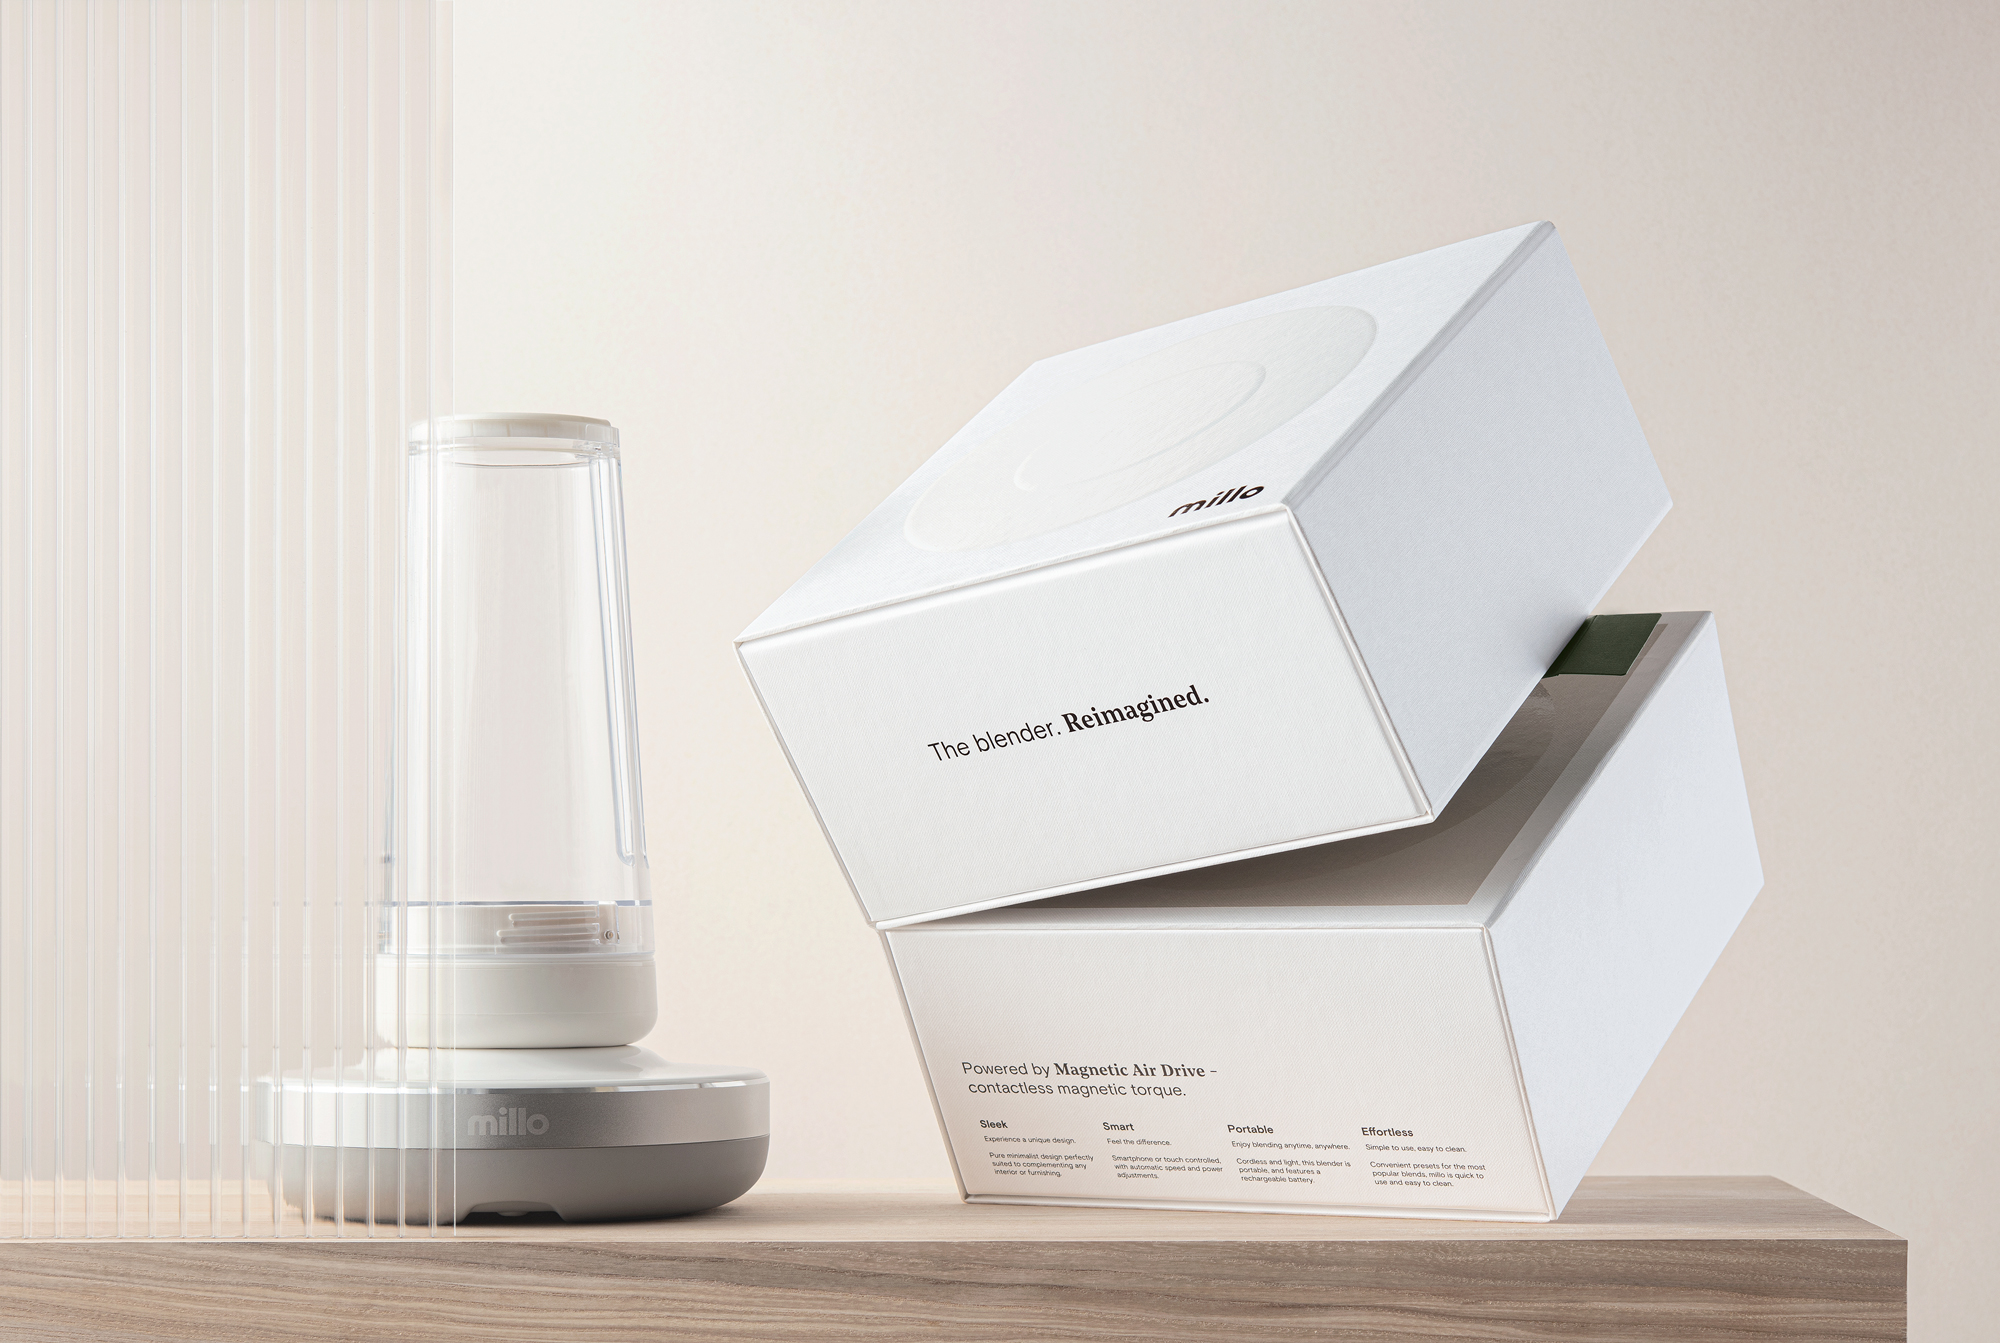 Recyclable Packaging Design for Future Technology Blender Design by Dziugas Valancauskas